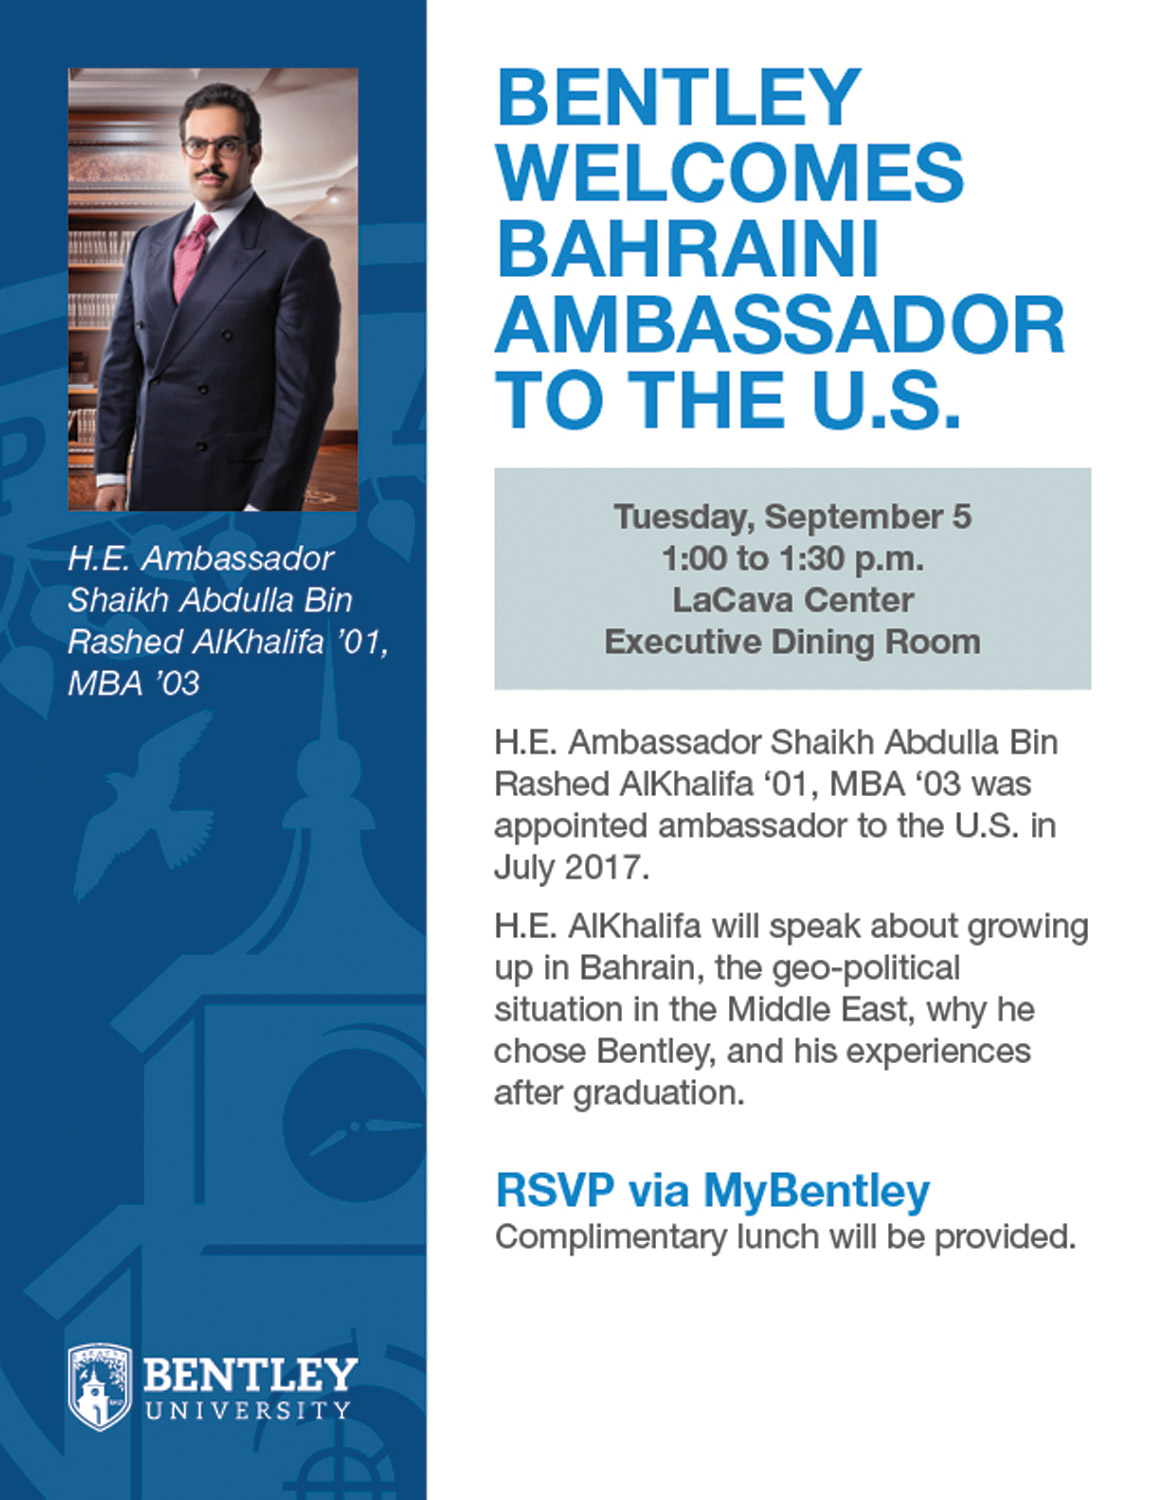 Bentley University Bahraini Ambassador Flyer large